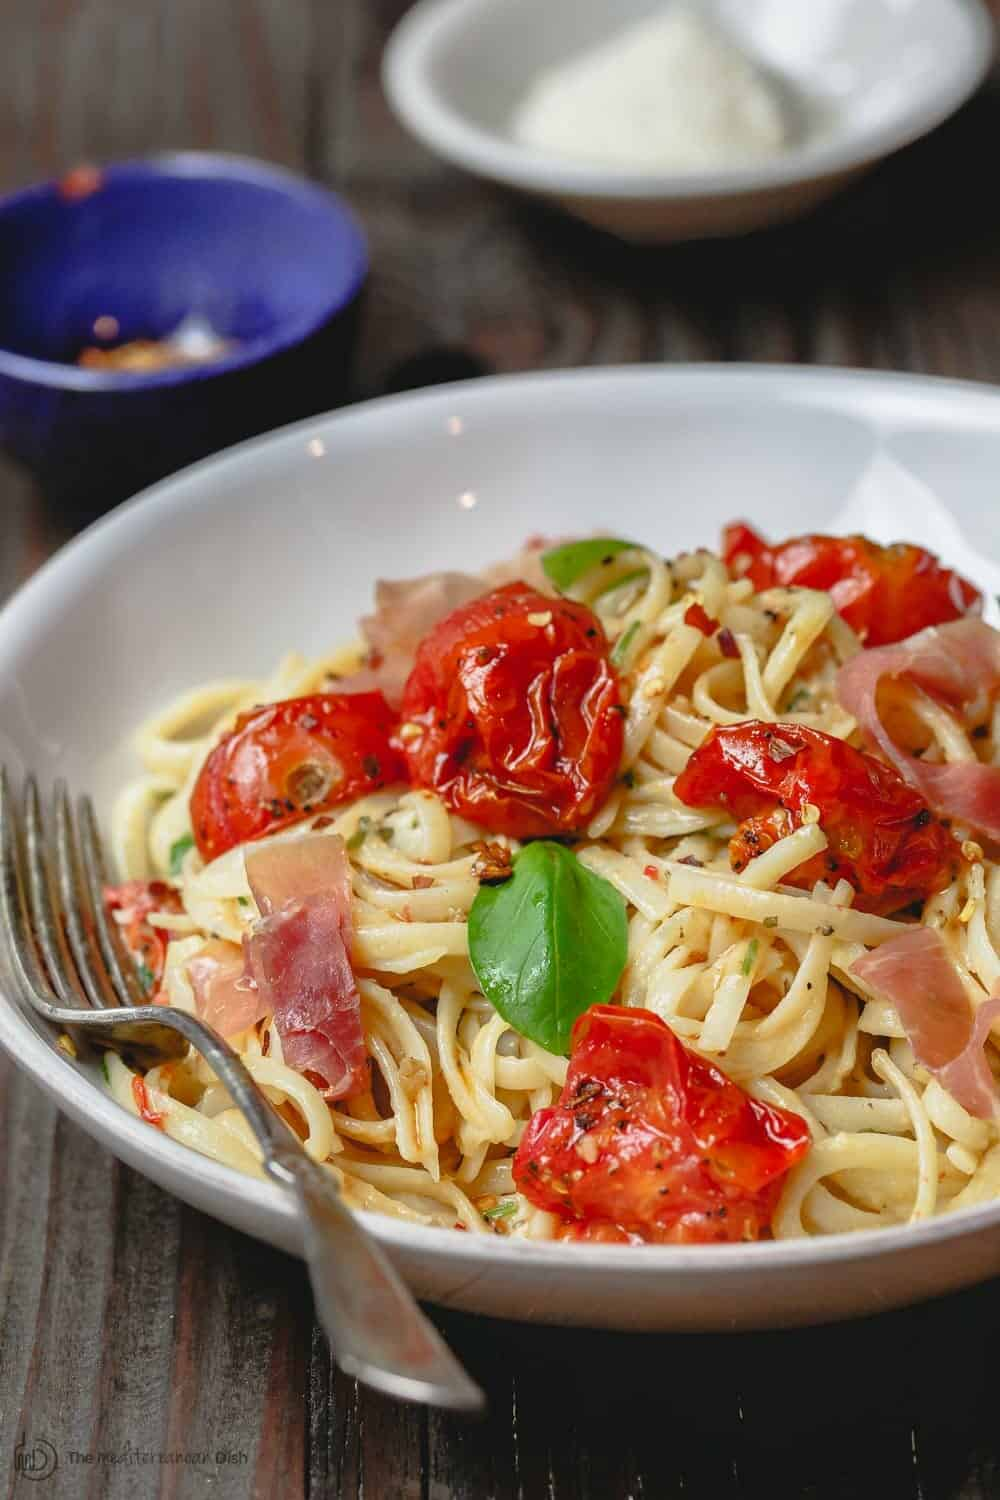 Carbonara Recipe with Roasted Tomatoes | The Mediterranean Dish. A lighter, and flavor-packed cabornara recipes with garlic roasted tomatoes and fresh herbs. You can add ribbons of prosciutto, if you like. A couple of tricks make a perfectly creamy carbonara. Recipe from themediterraneandish.com #pasta #pastarecipe #italianfood #mediterraneandiet #carbonara #easyrecipe